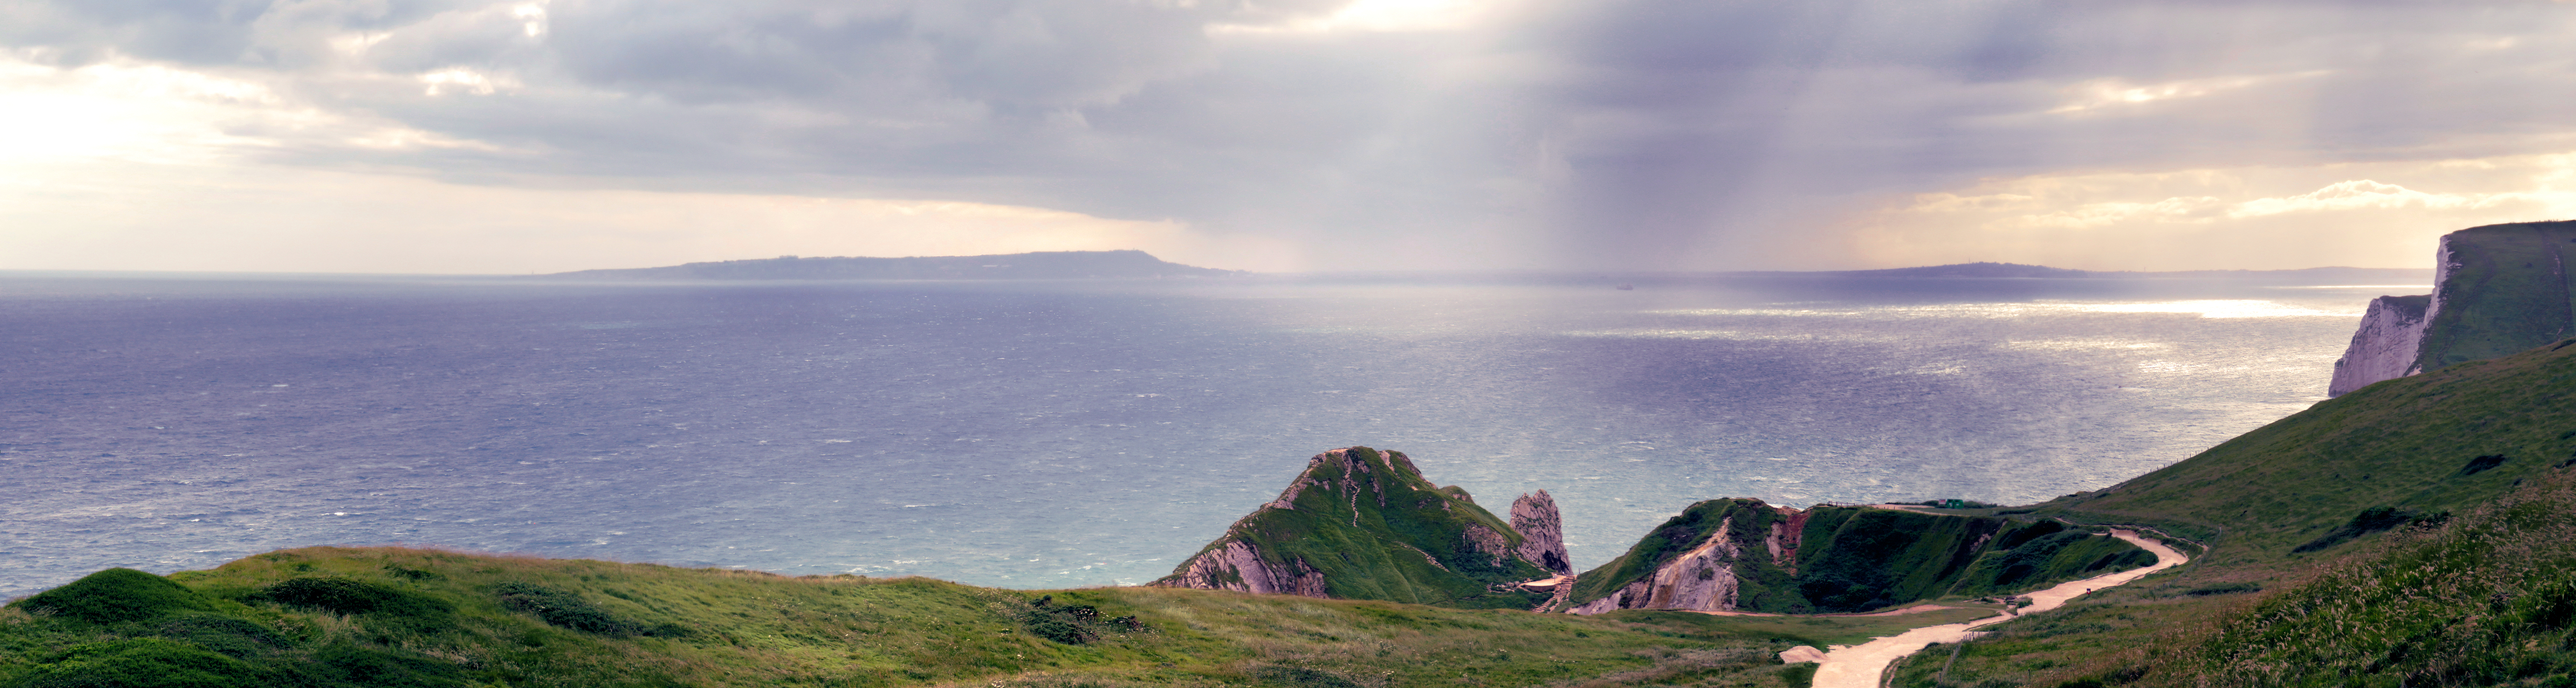 View from clifs above Durdle Door at dusk with rain approaching over the sea. & Durdle Door - Wikipedia